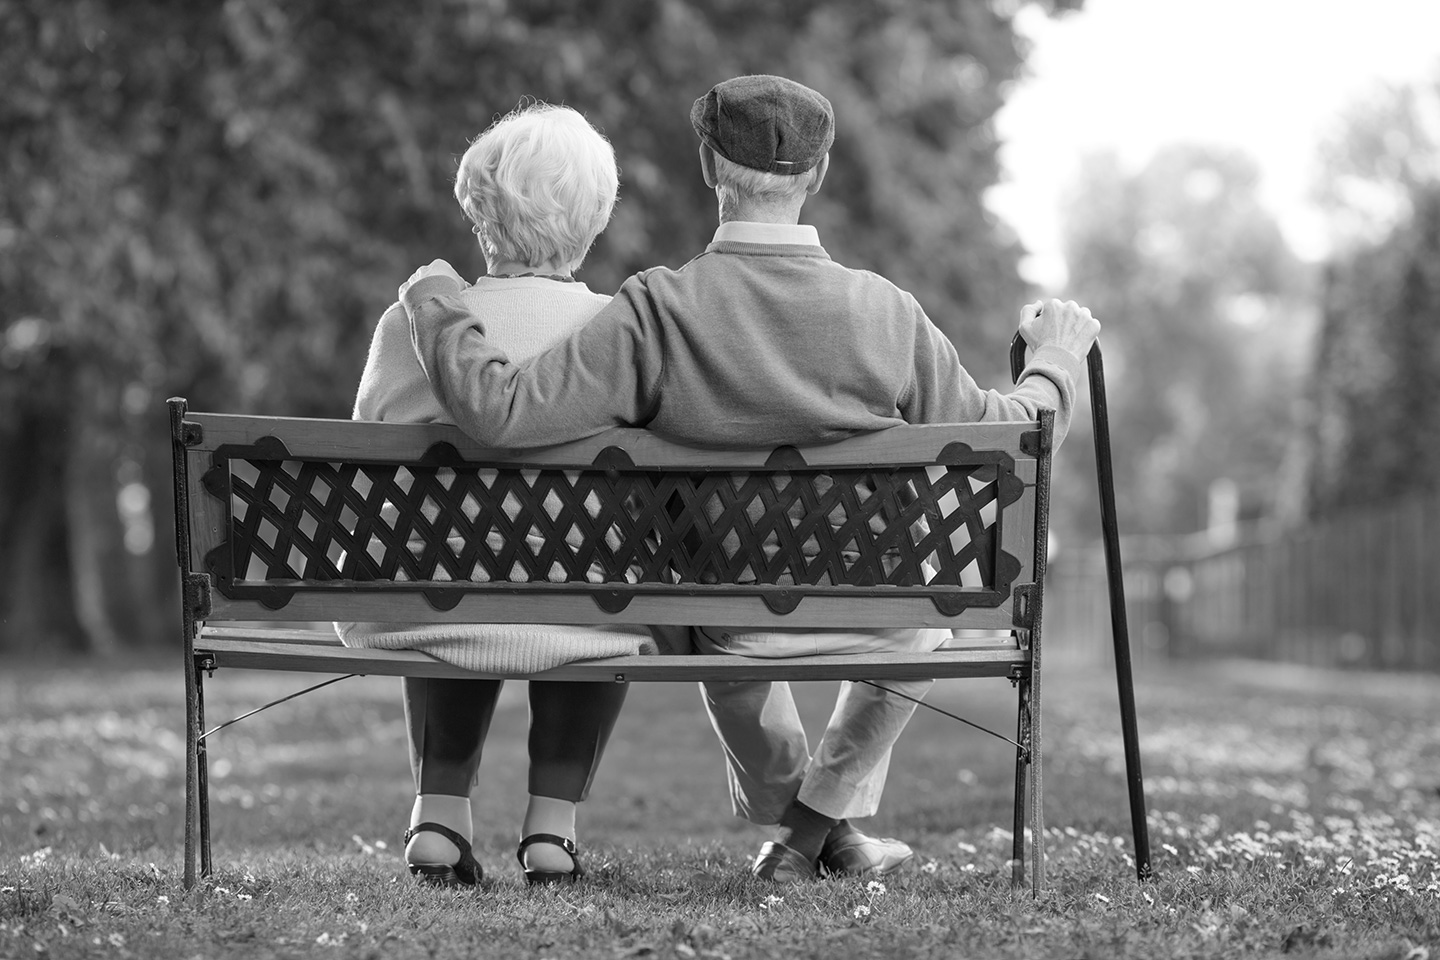 Elderly couple sitting on a couch in a park